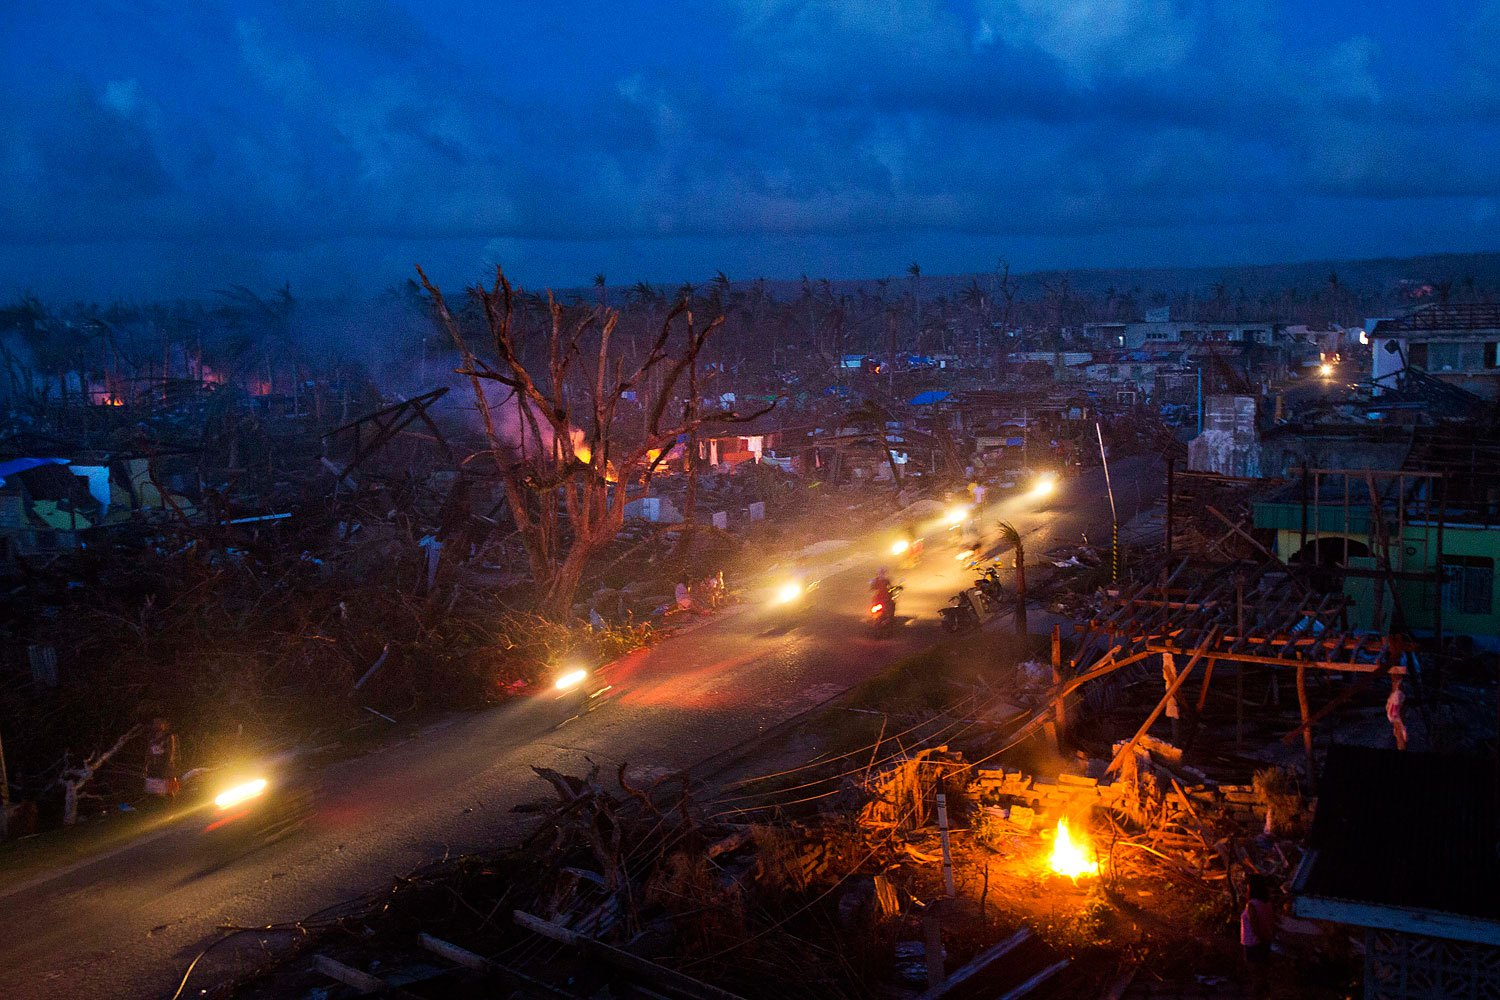 Typhoon Haiyan survivors ride motorbikes through the ruins of the destroyed town of Guiuan, Philippines on November 14, 2013.